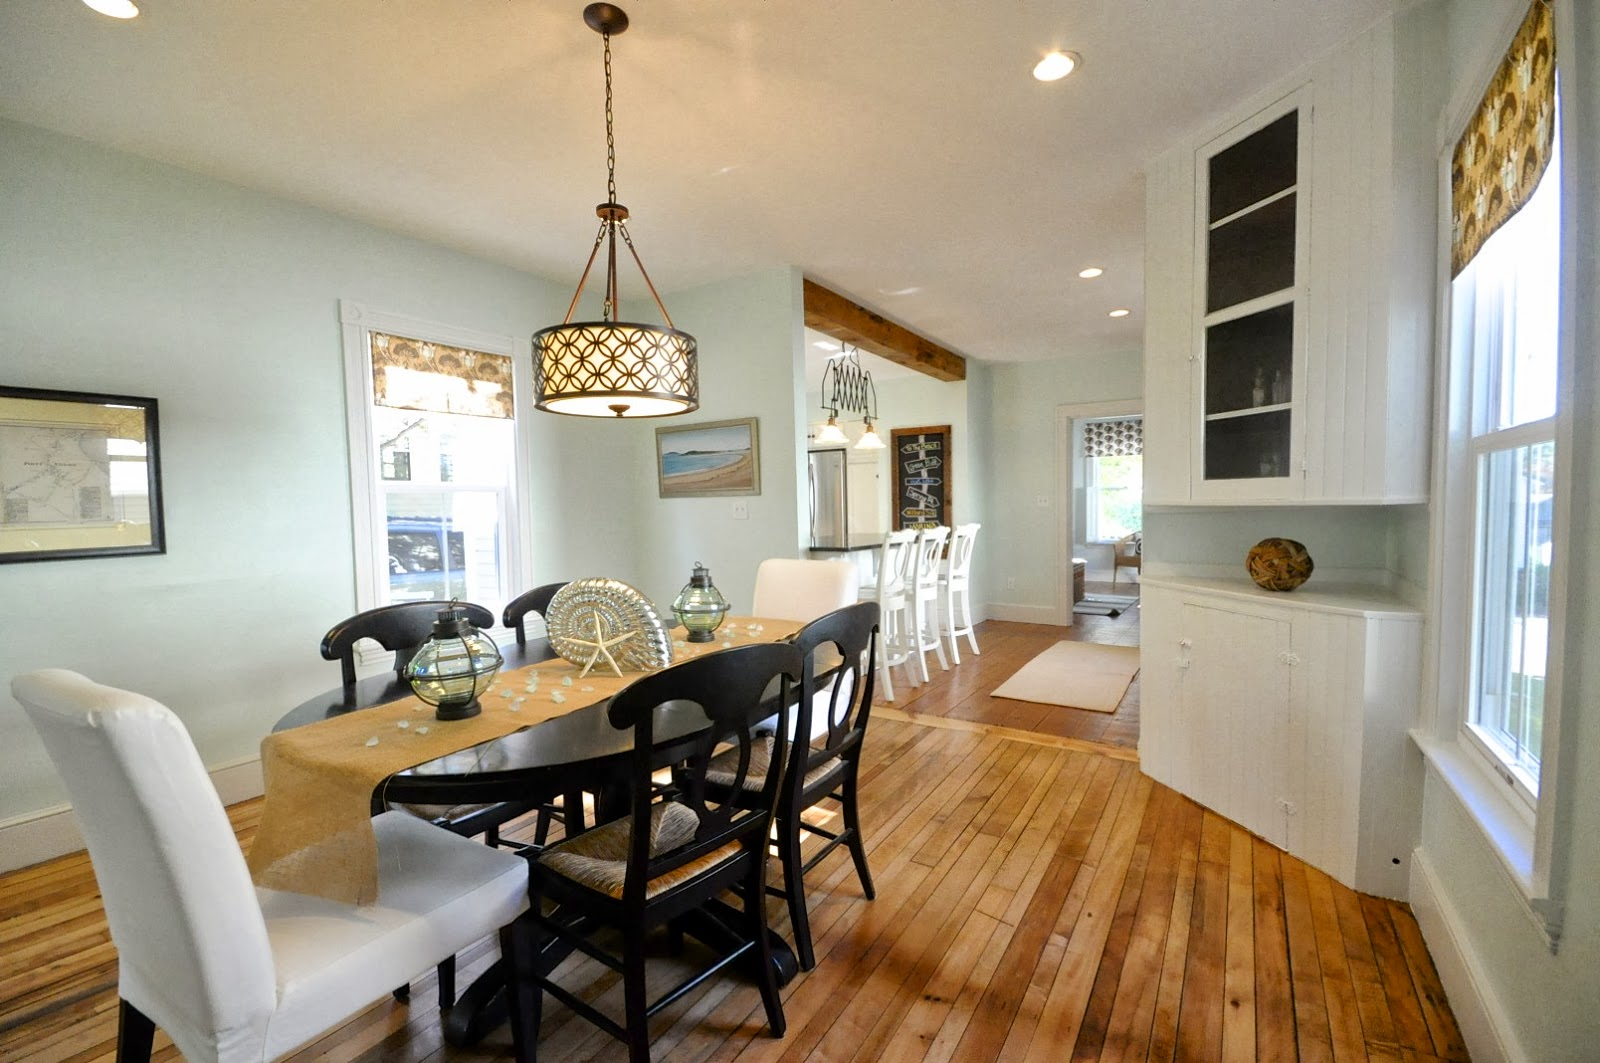 Dining Room Lighting Light Fixtures Cost Guide